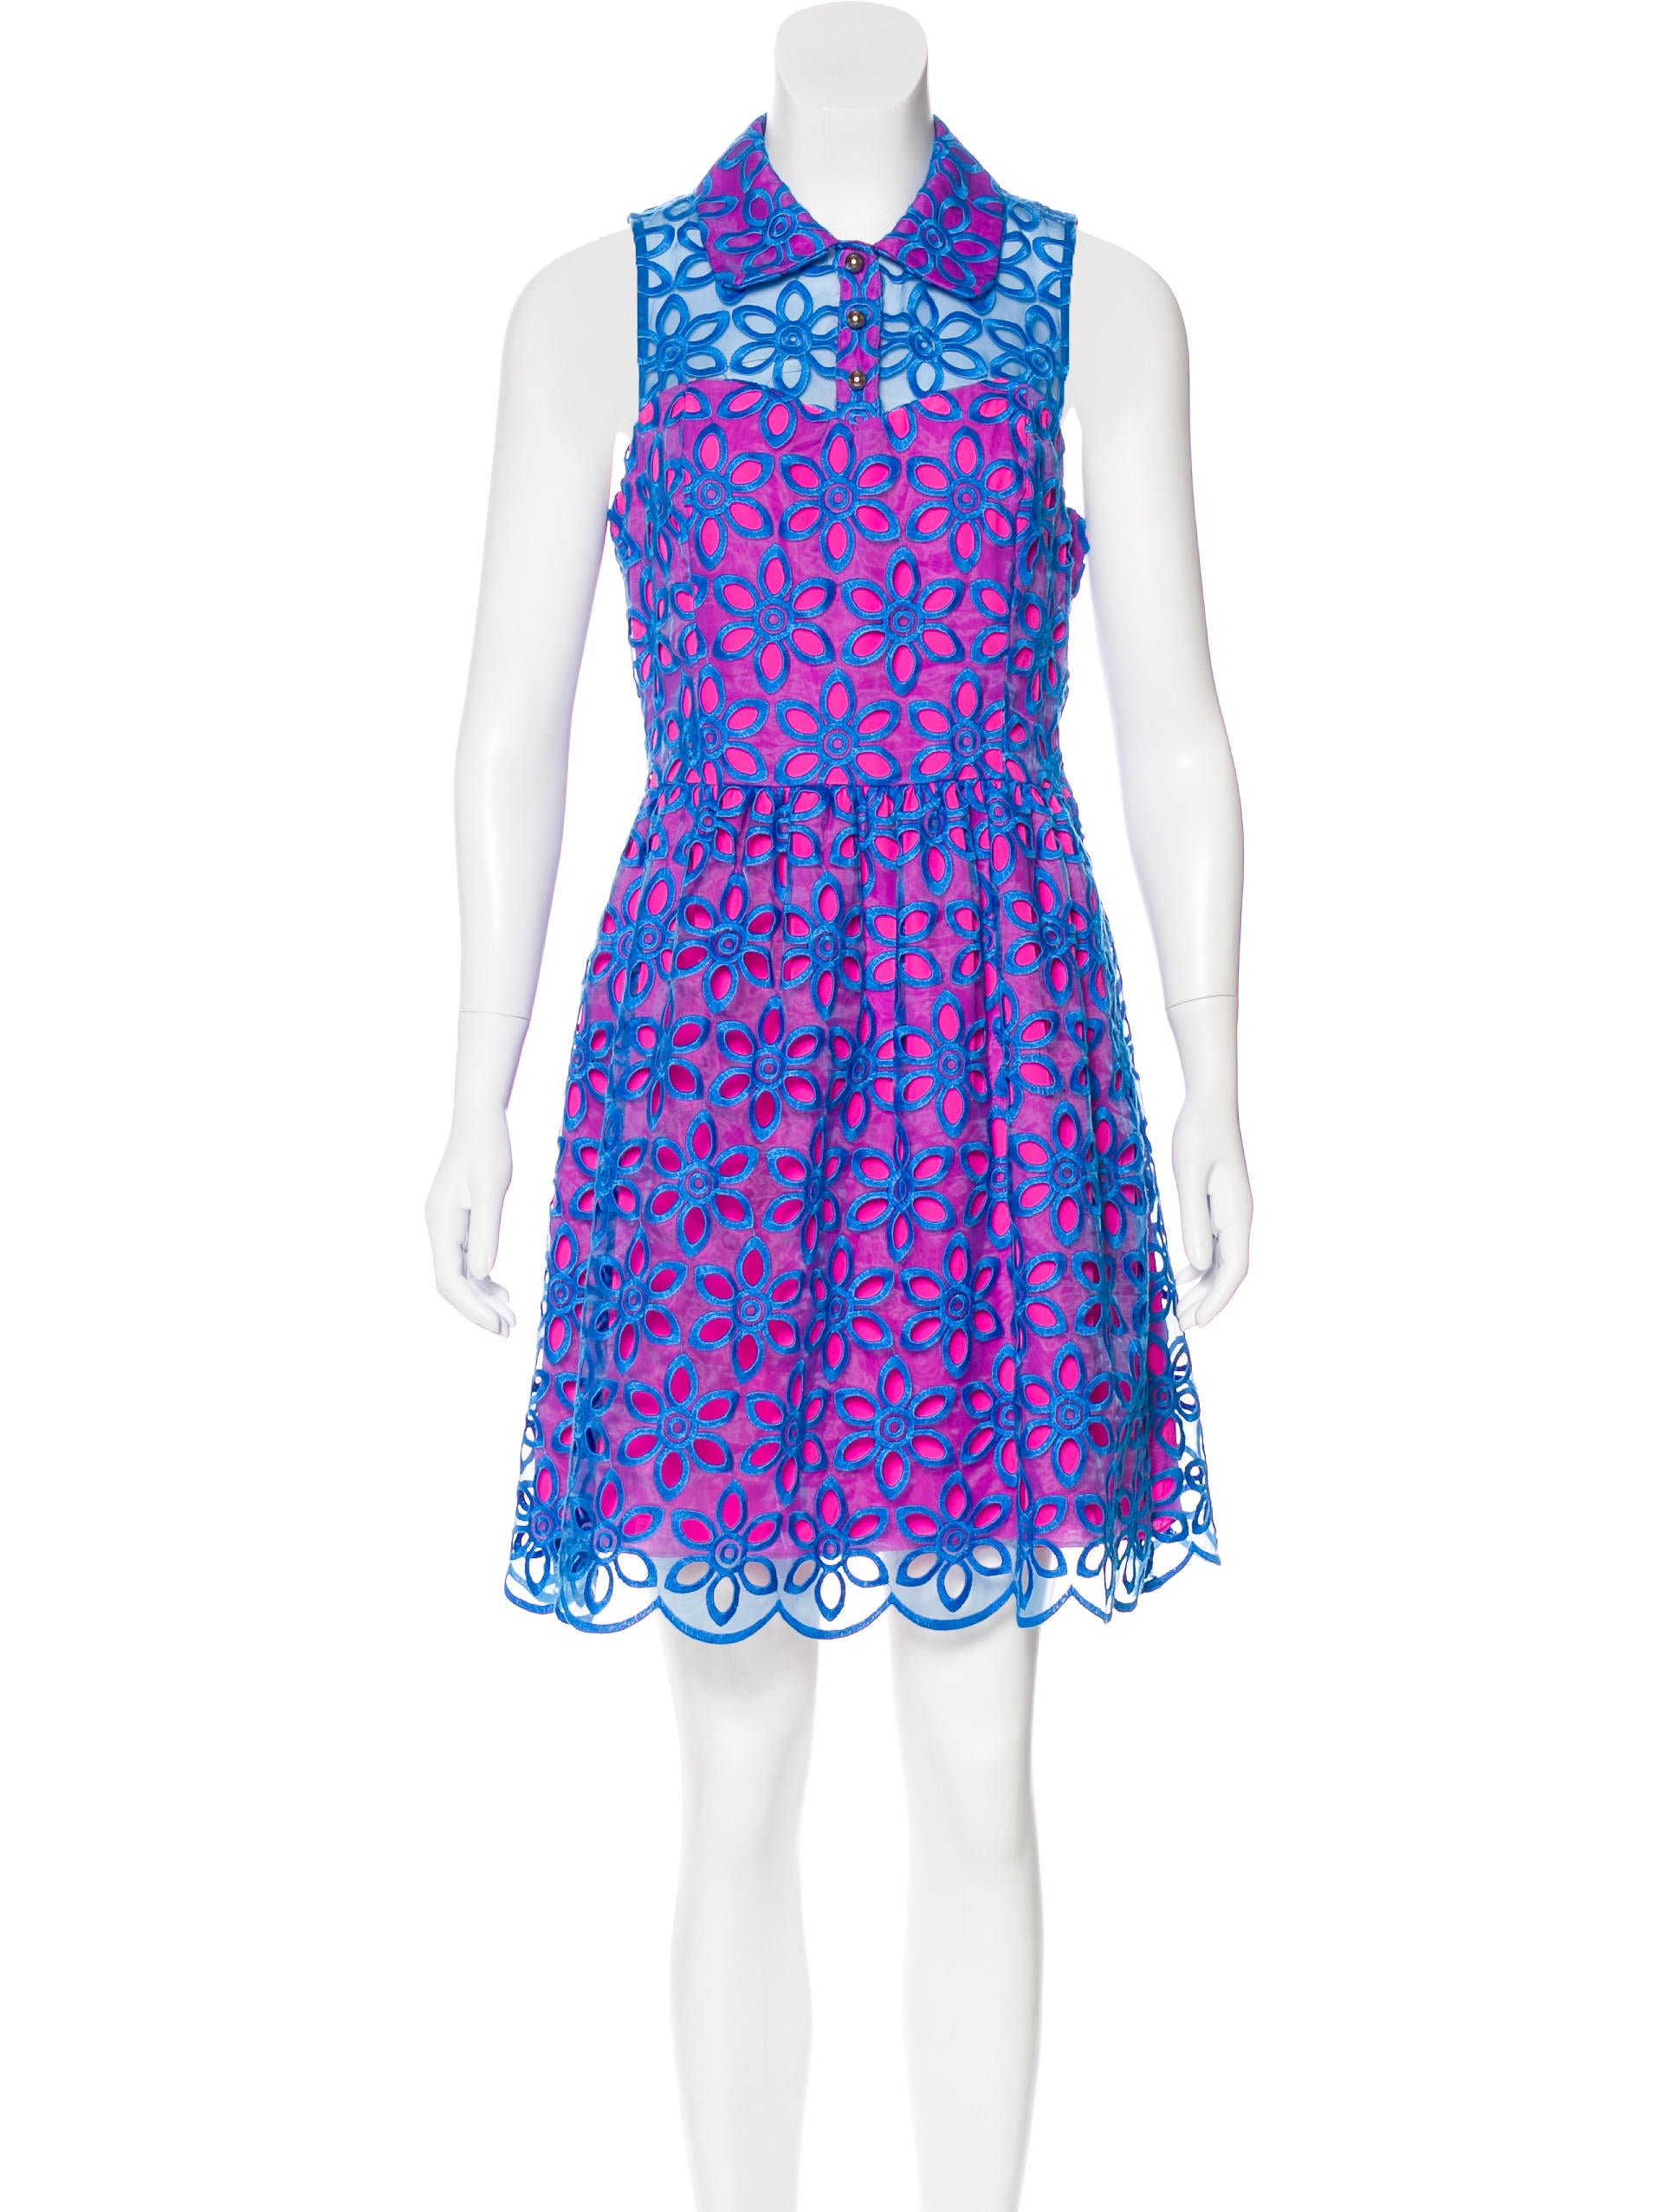 Lilly Pulitzer Floral Embroidered Mini Dress - Clothing - WLL20199 ...